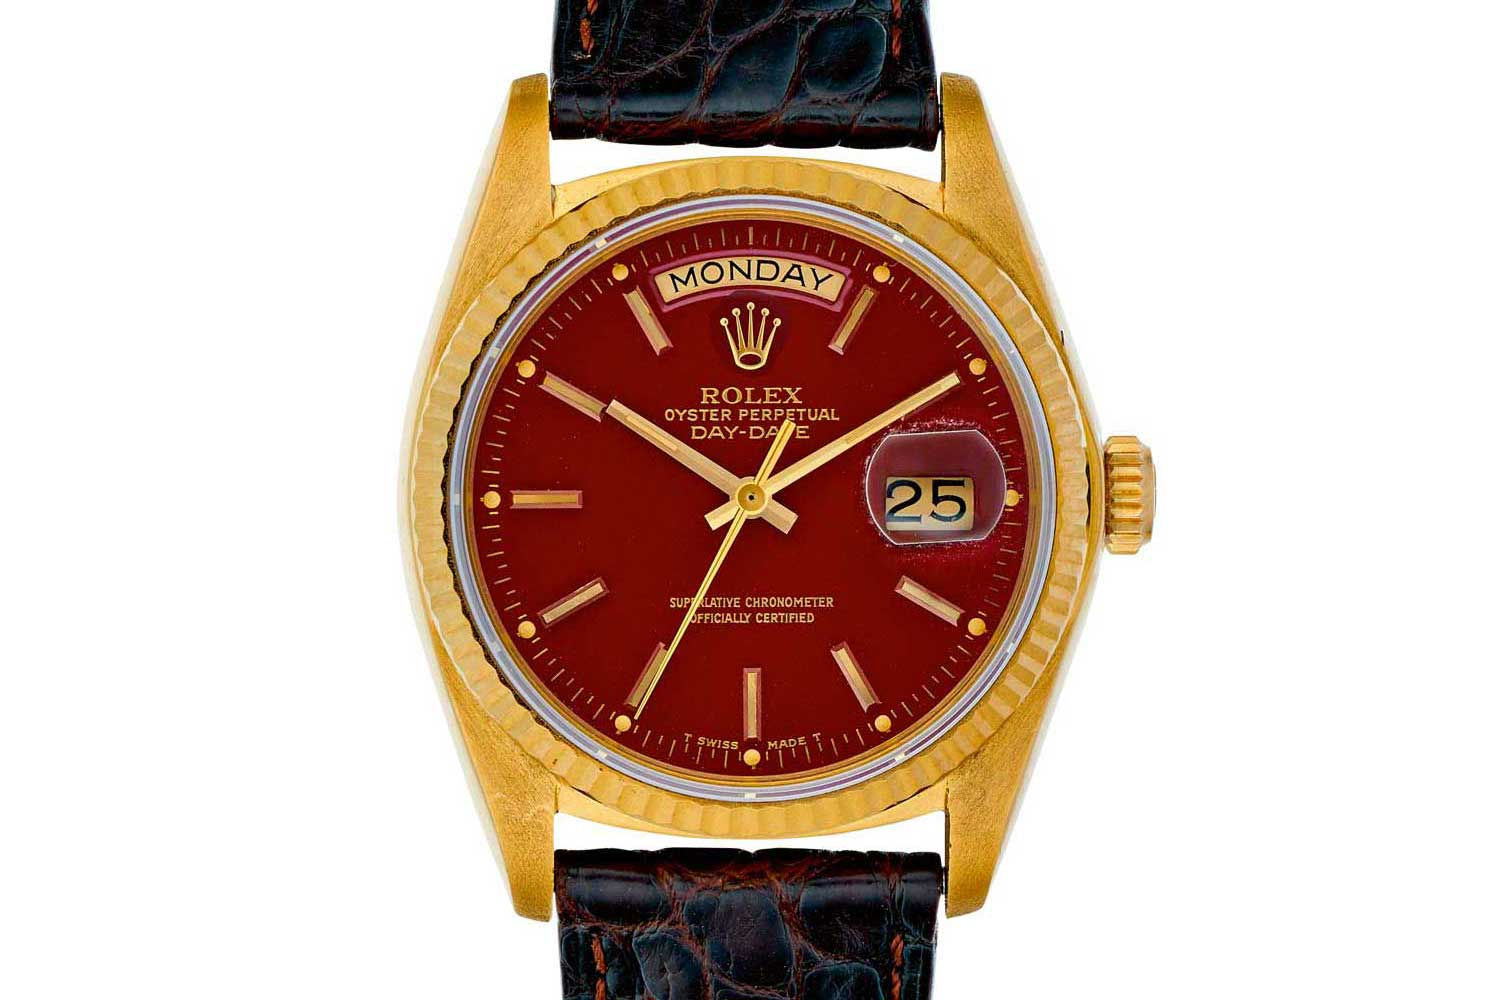 Rolex-Day-Date ref 18038 from 1970s.